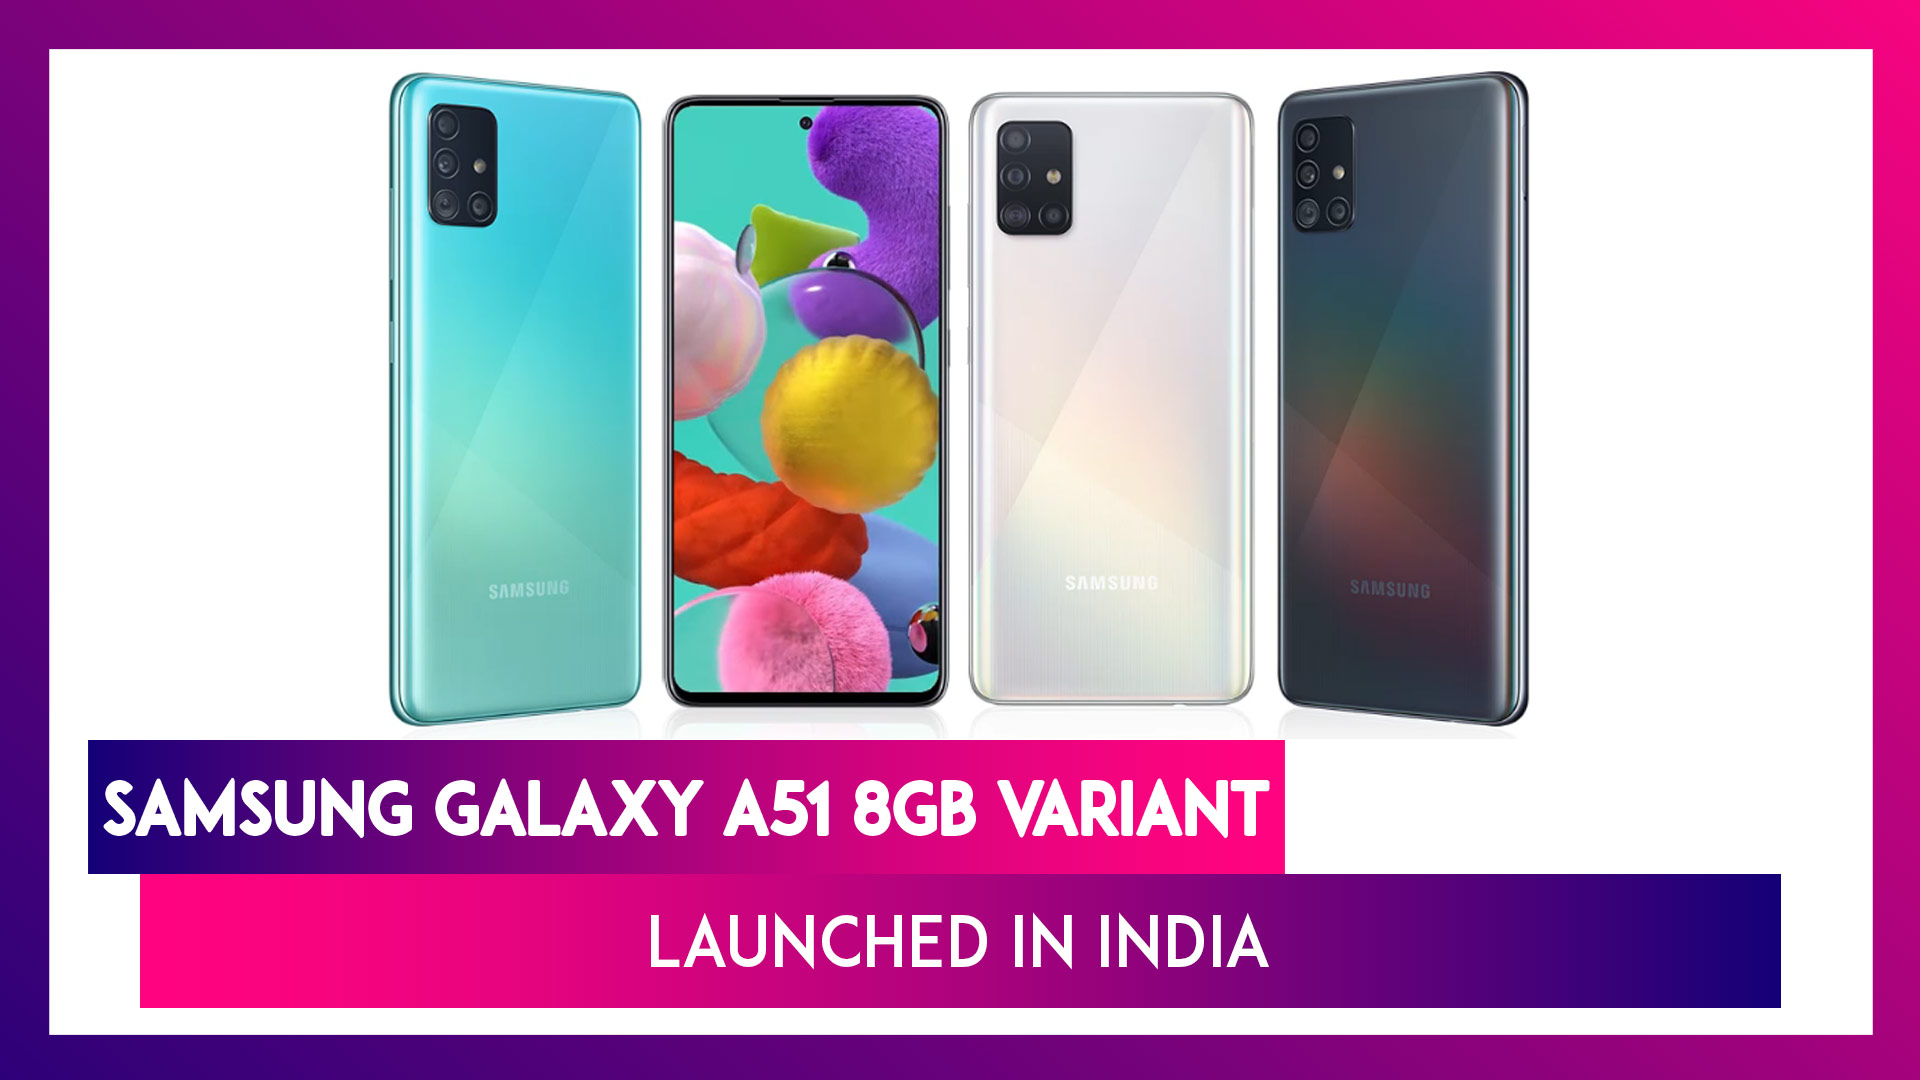 Samsung Galaxy A51 Smartphone Featuring 8GB & 128GB Storage  Launched in India; Price, Variants, Features & Specifications